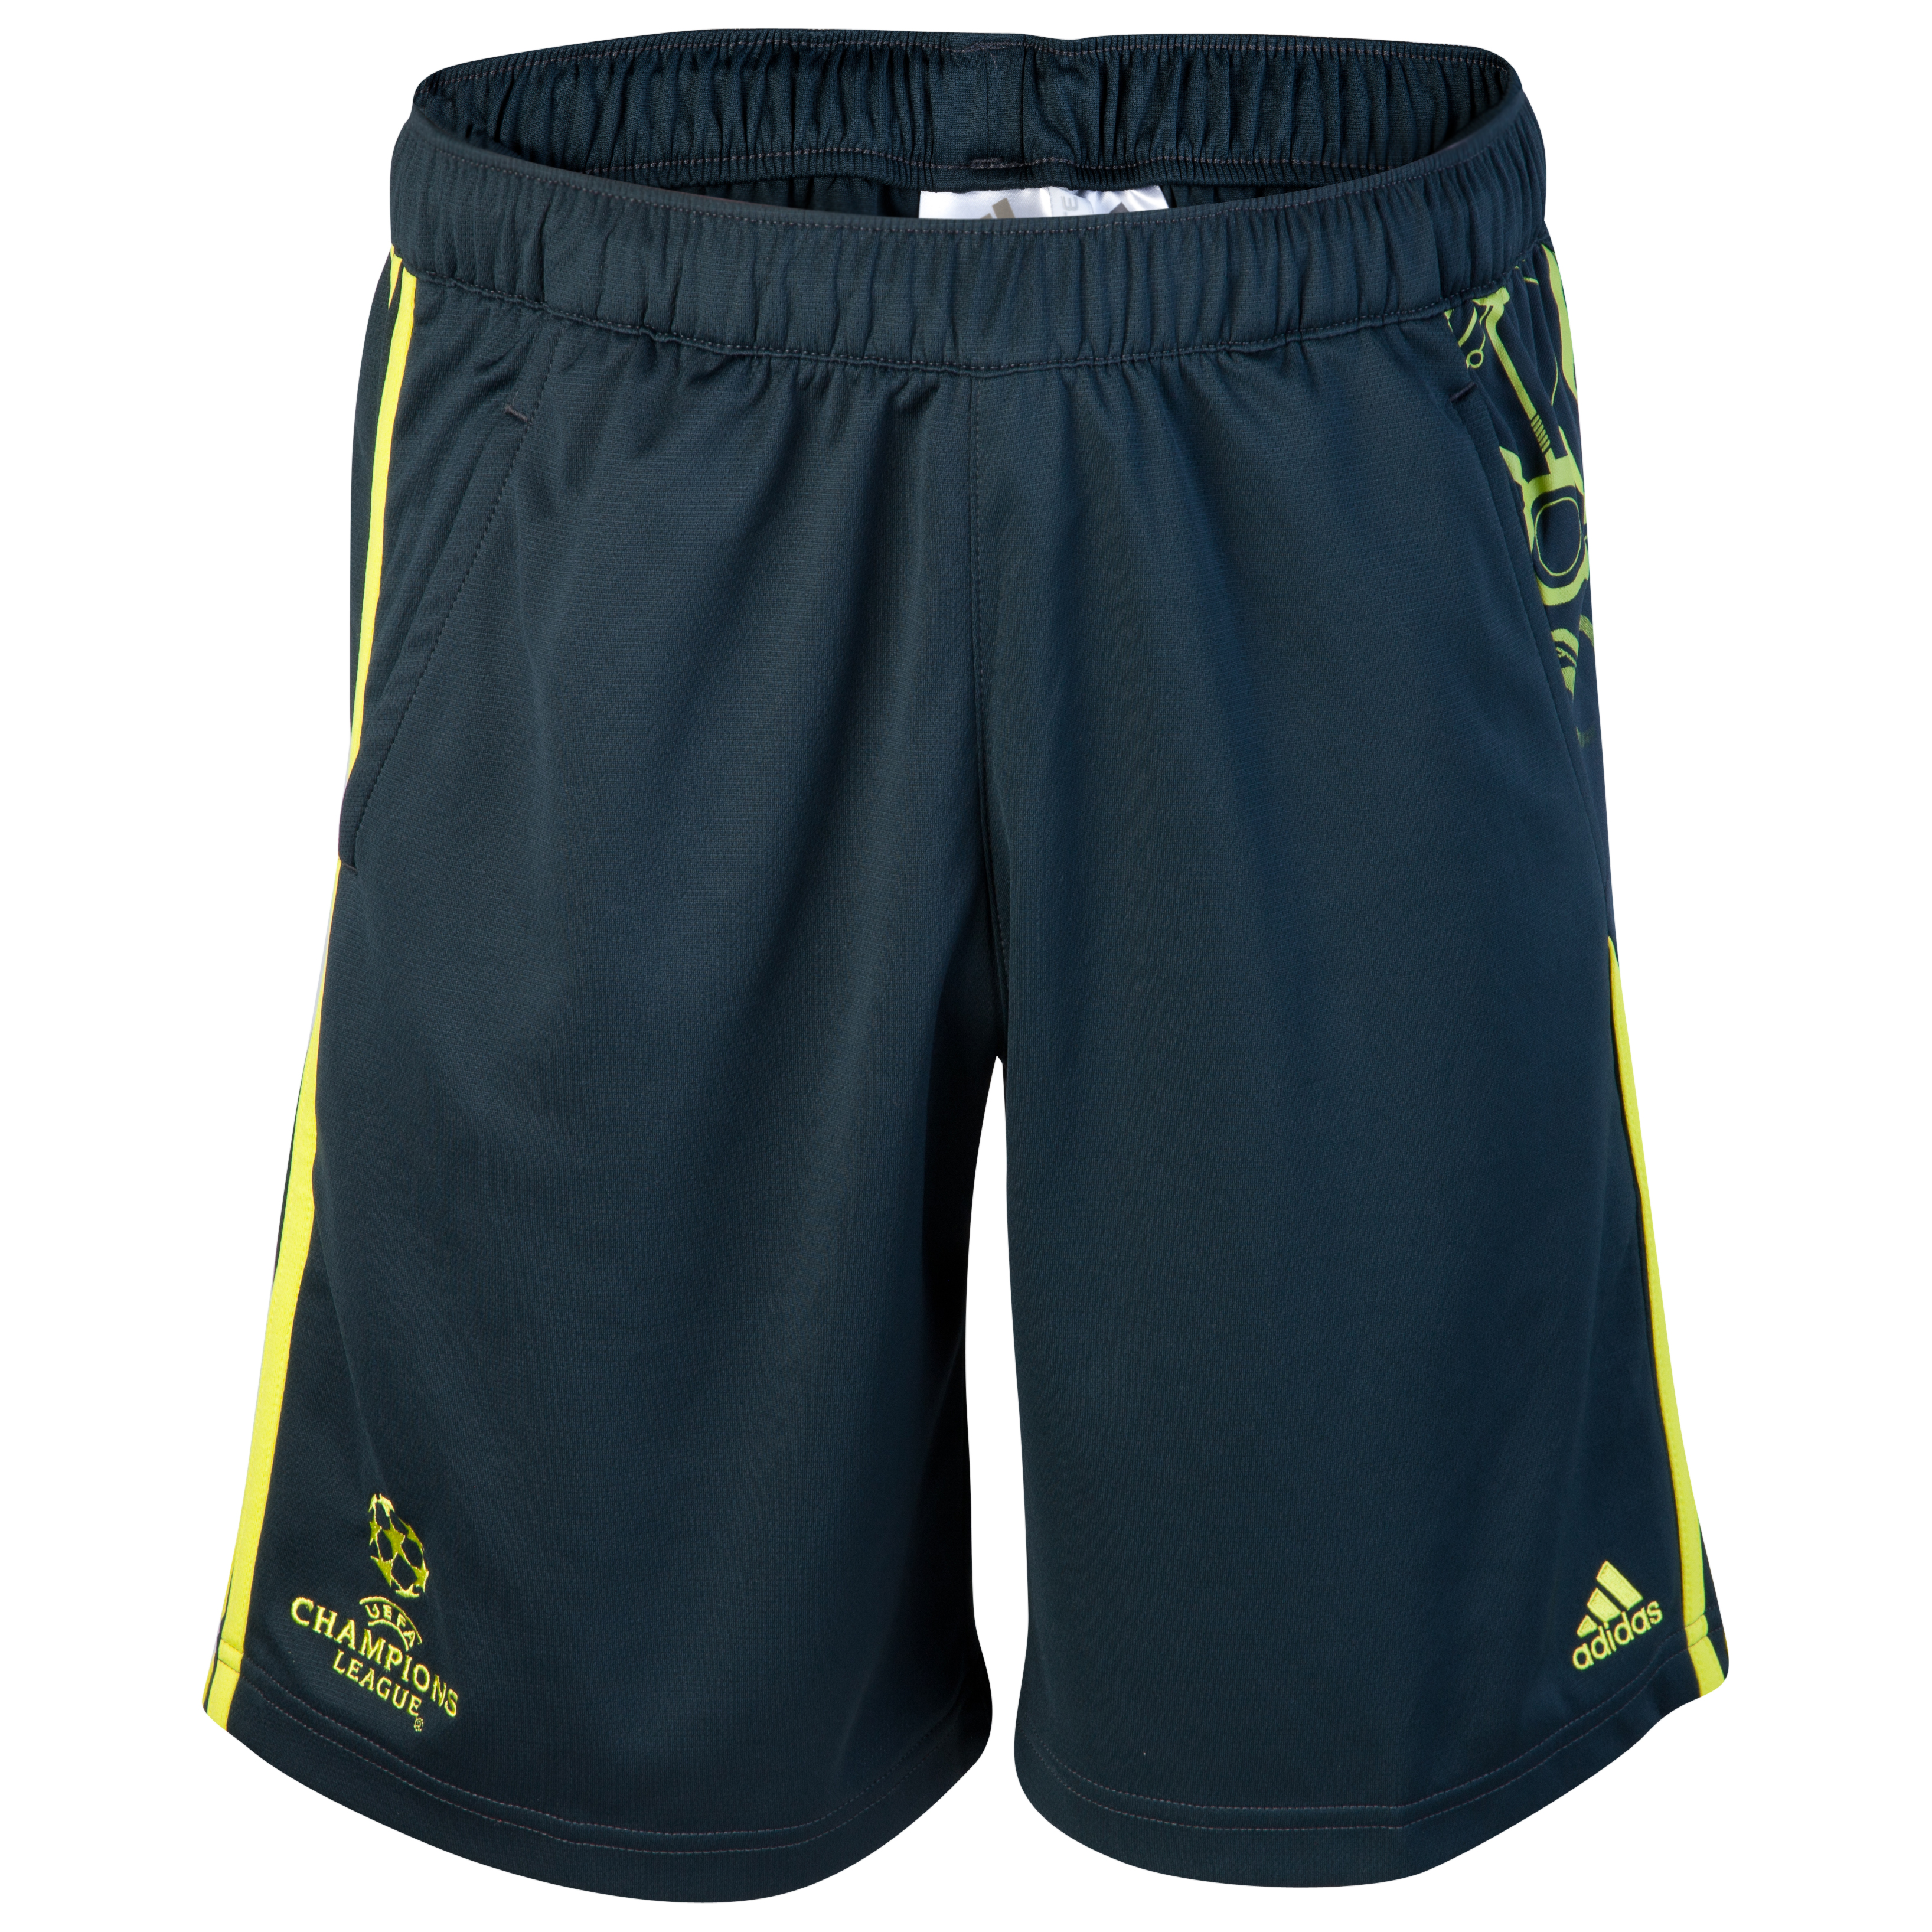 Adidas Predator Training Short - Tech Onix/Lab Lime